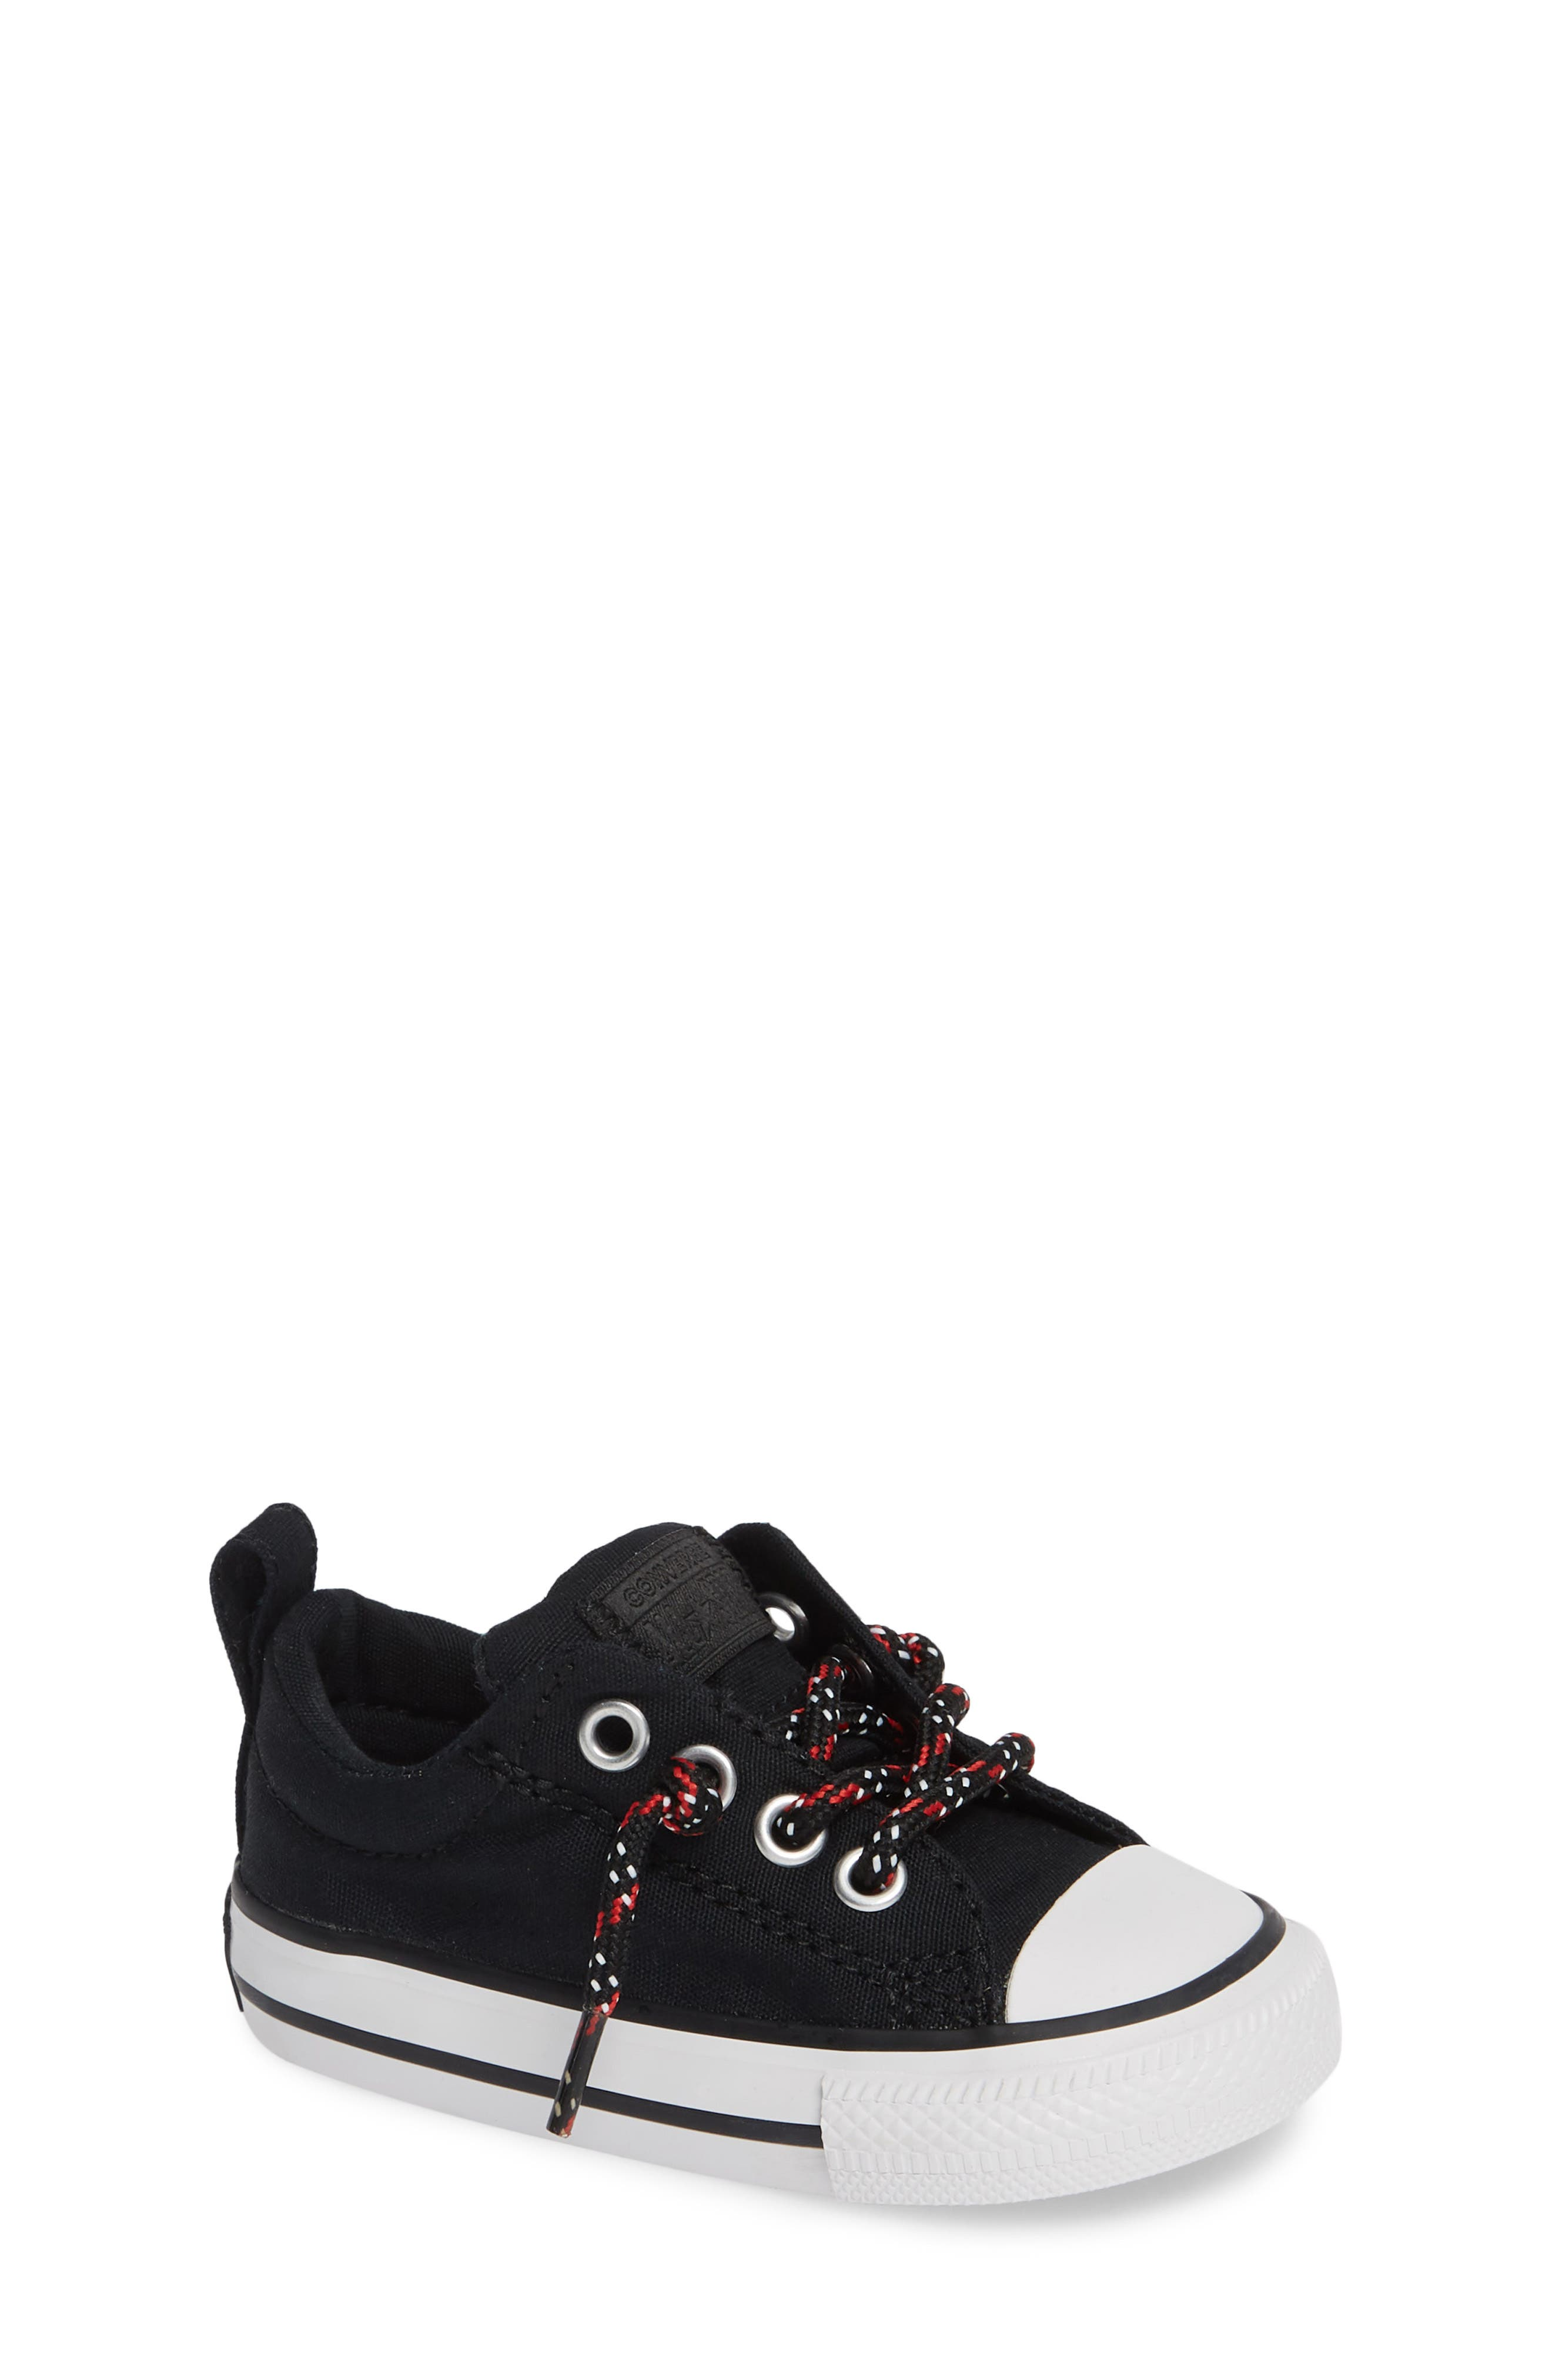 All Star<sup>®</sup> Graphite & Glitter Low Top Sneaker,                             Main thumbnail 1, color,                             002